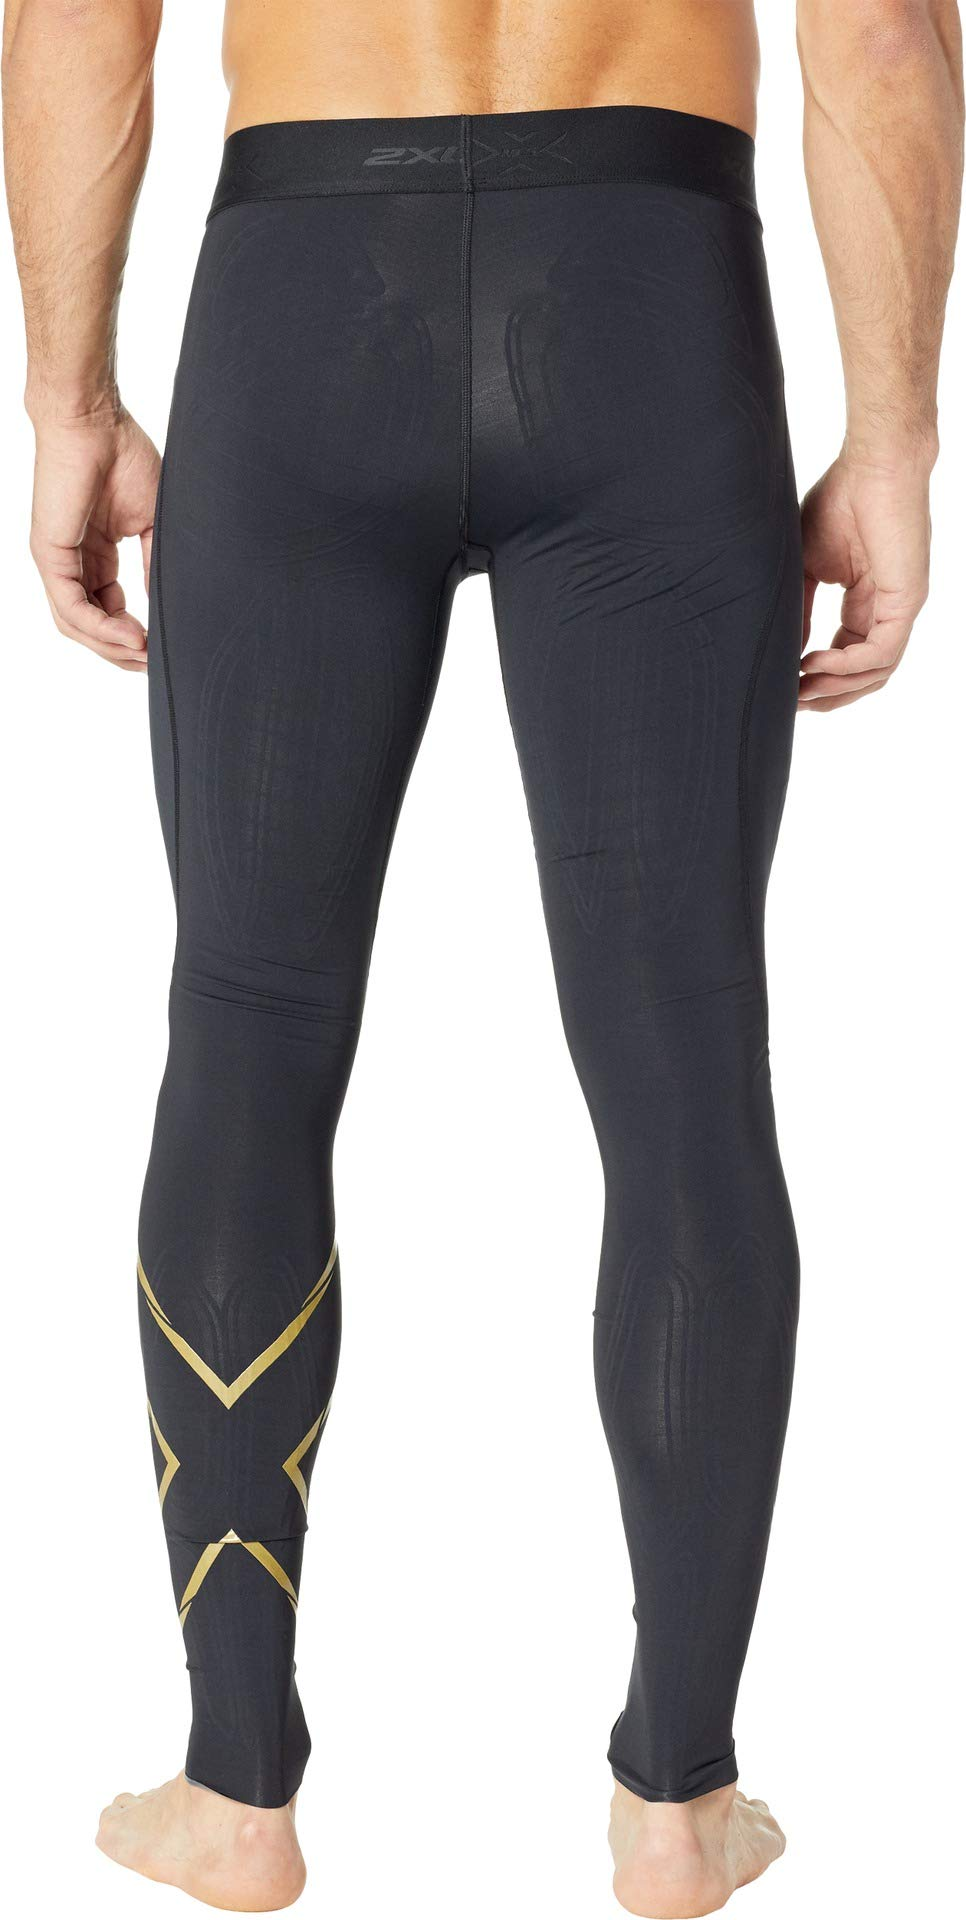 2XU Men's MCS Cross Training Compression Tights Black/Gold XX-Large R by 2XU (Image #3)